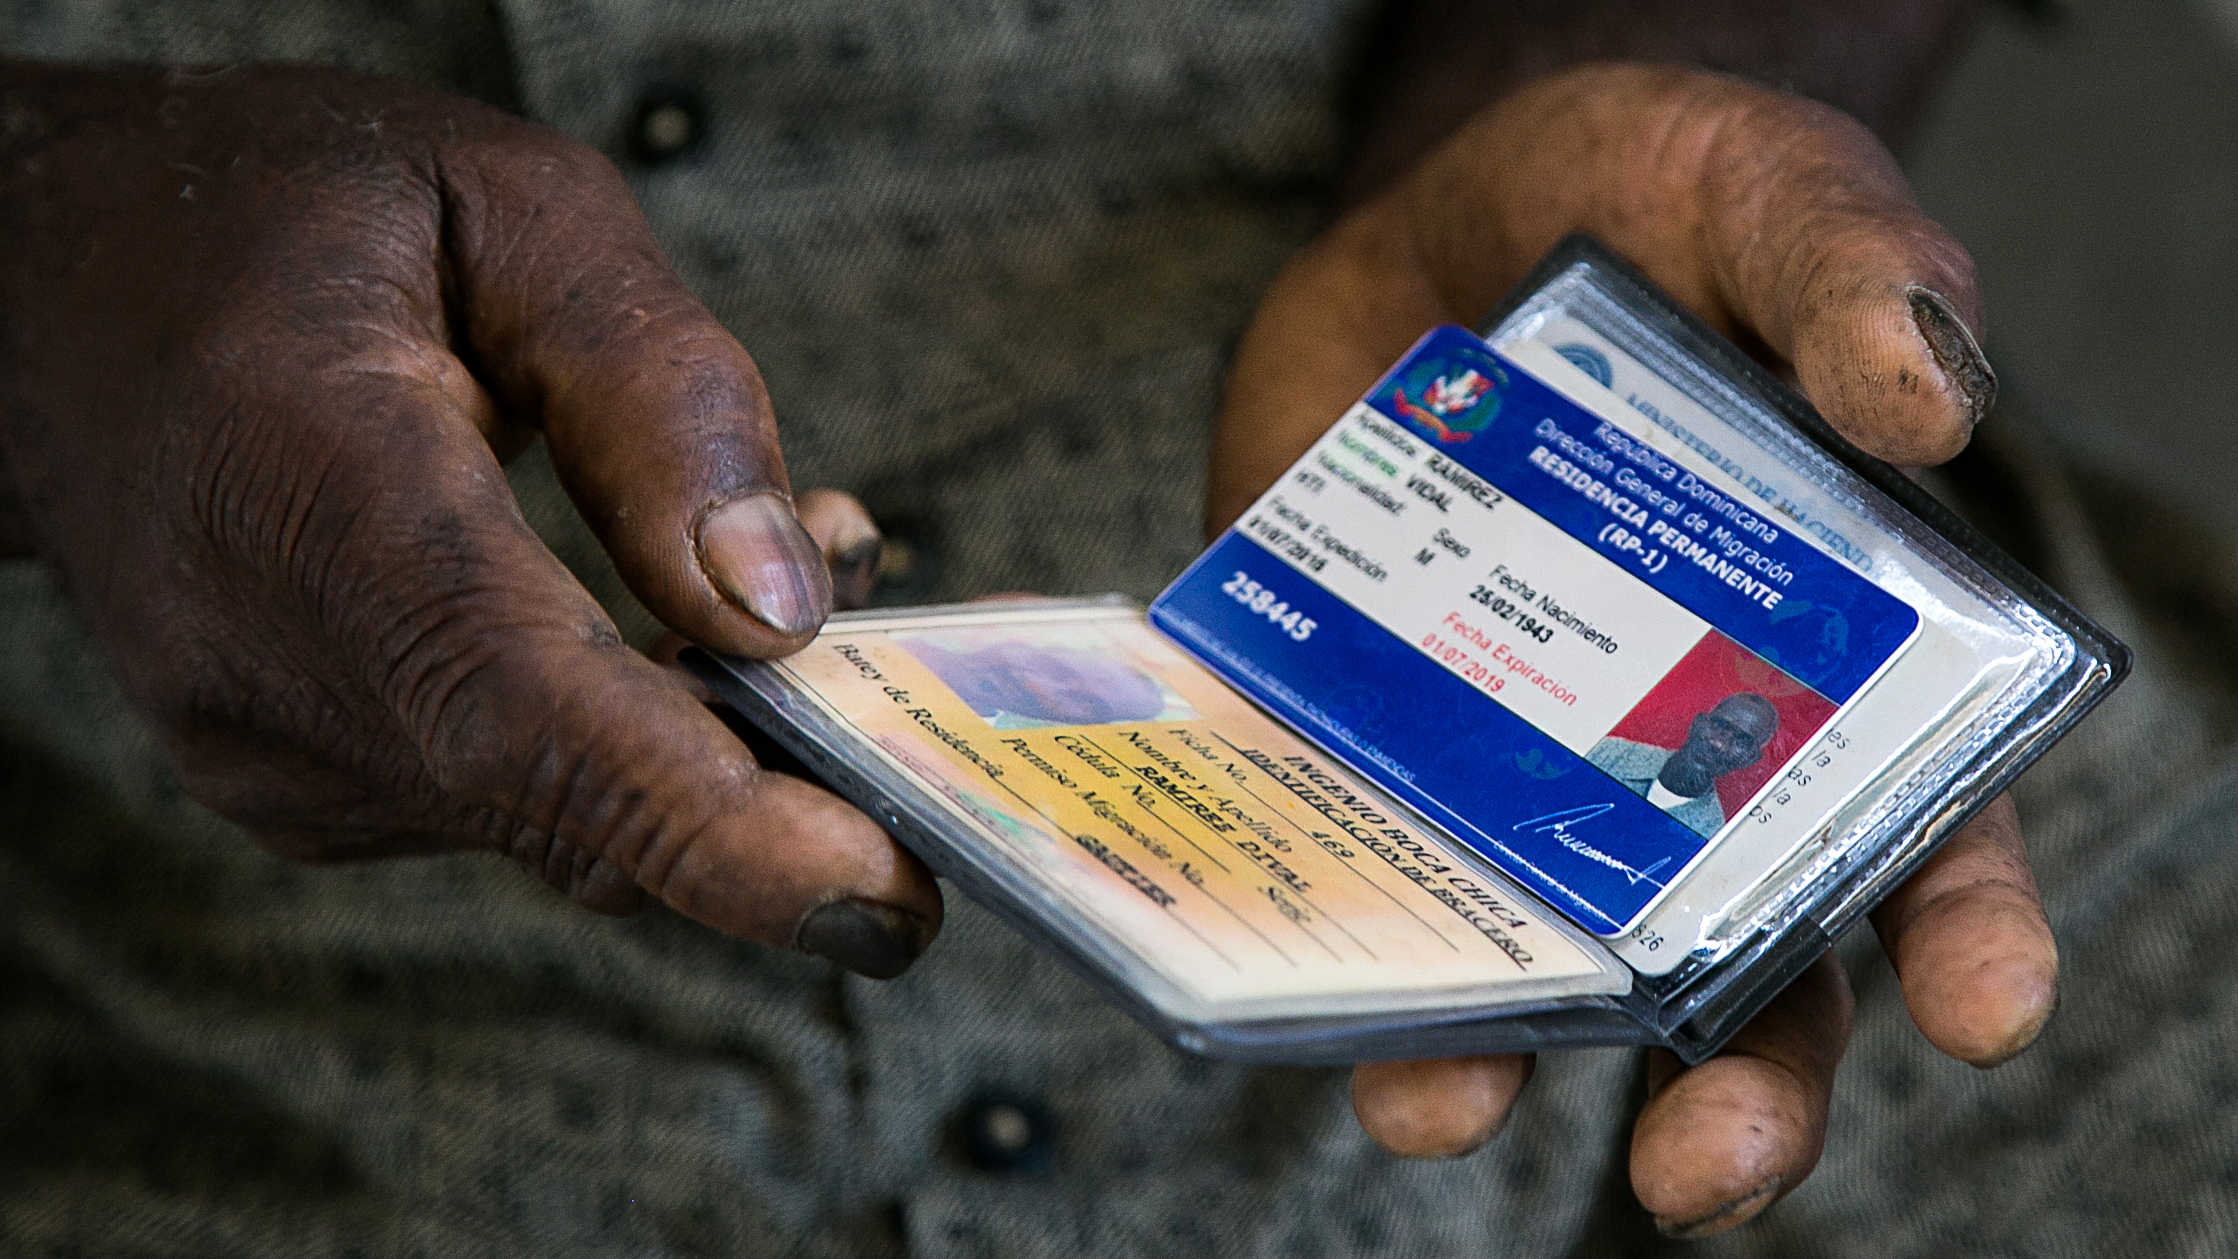 Man shows Permanent Resident Card in Dominican Republic. Photo Credit: PresidenciaRD